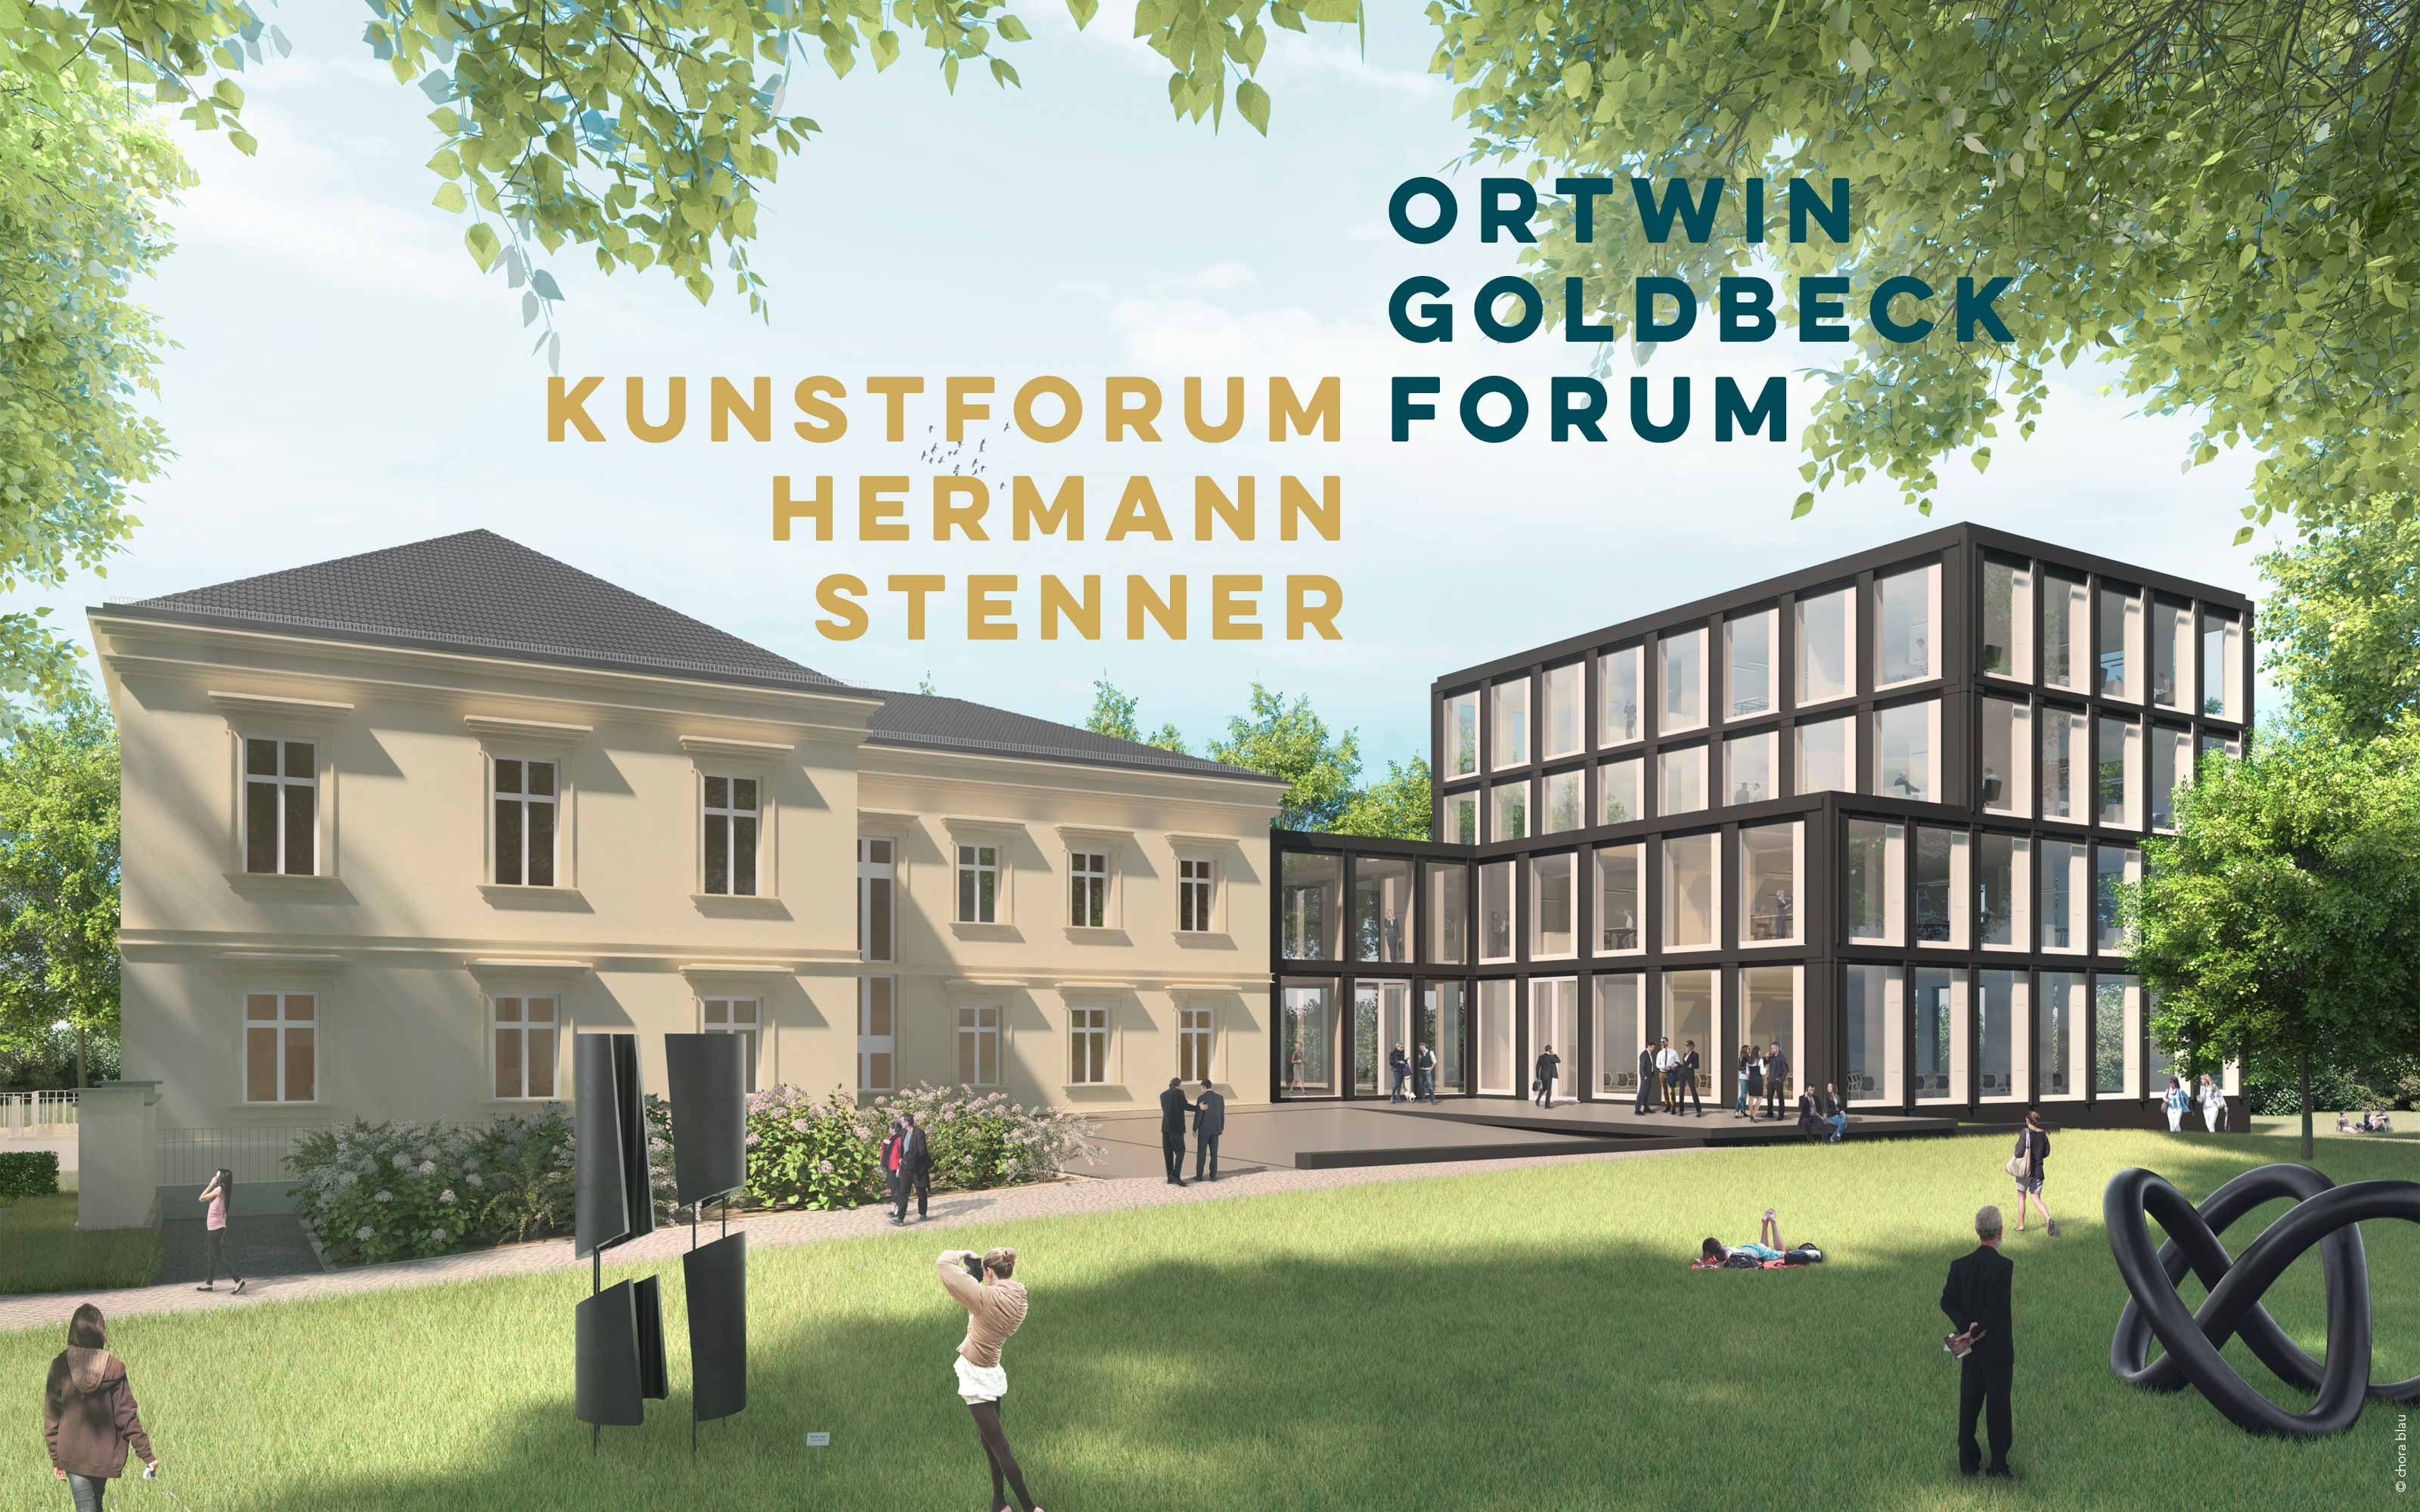 Visualisierung Ortwin Goldbeck Forum / Kunstforum Hermann Stenner